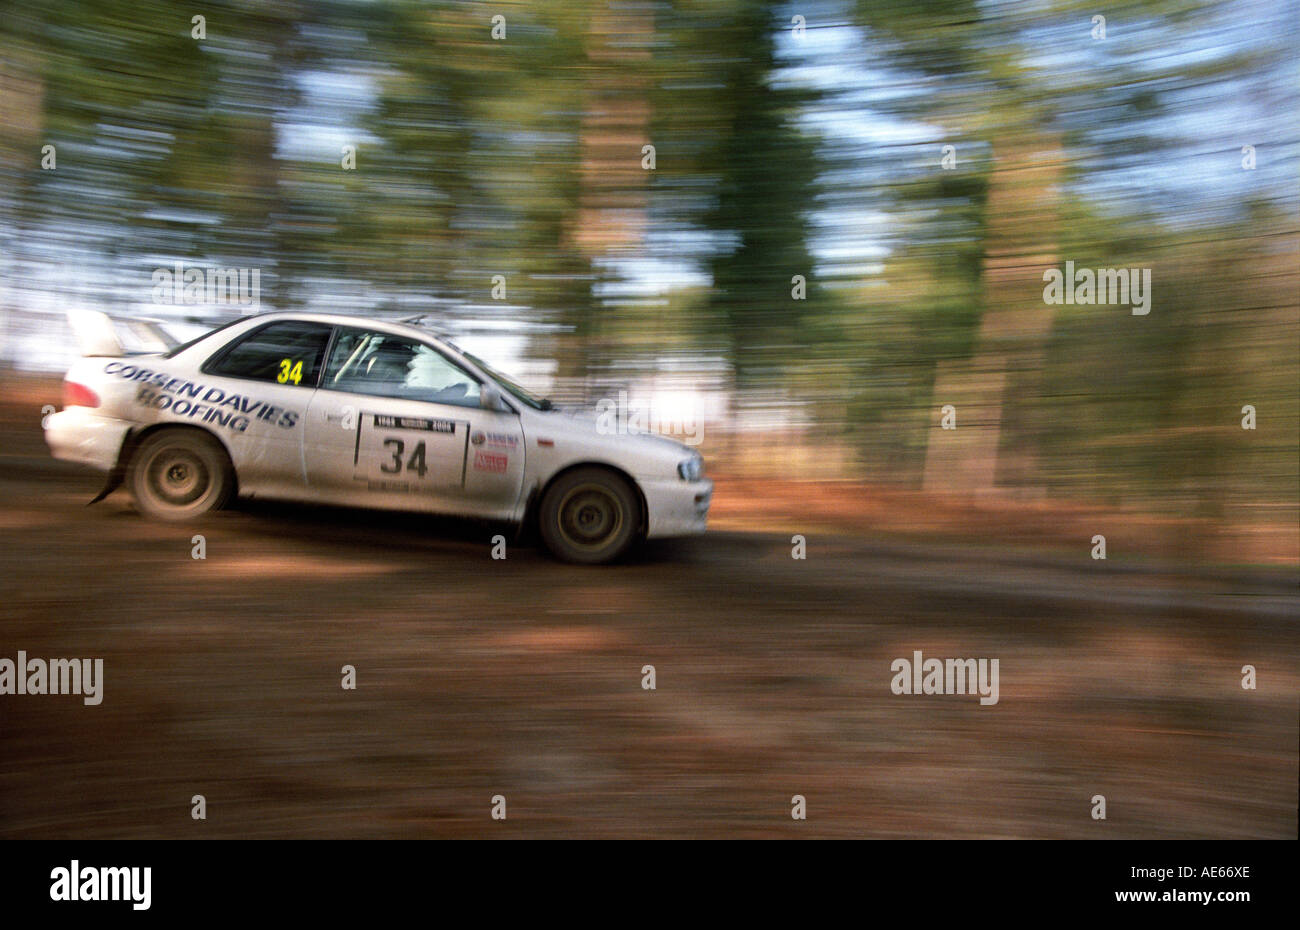 Image result for subaru number 34